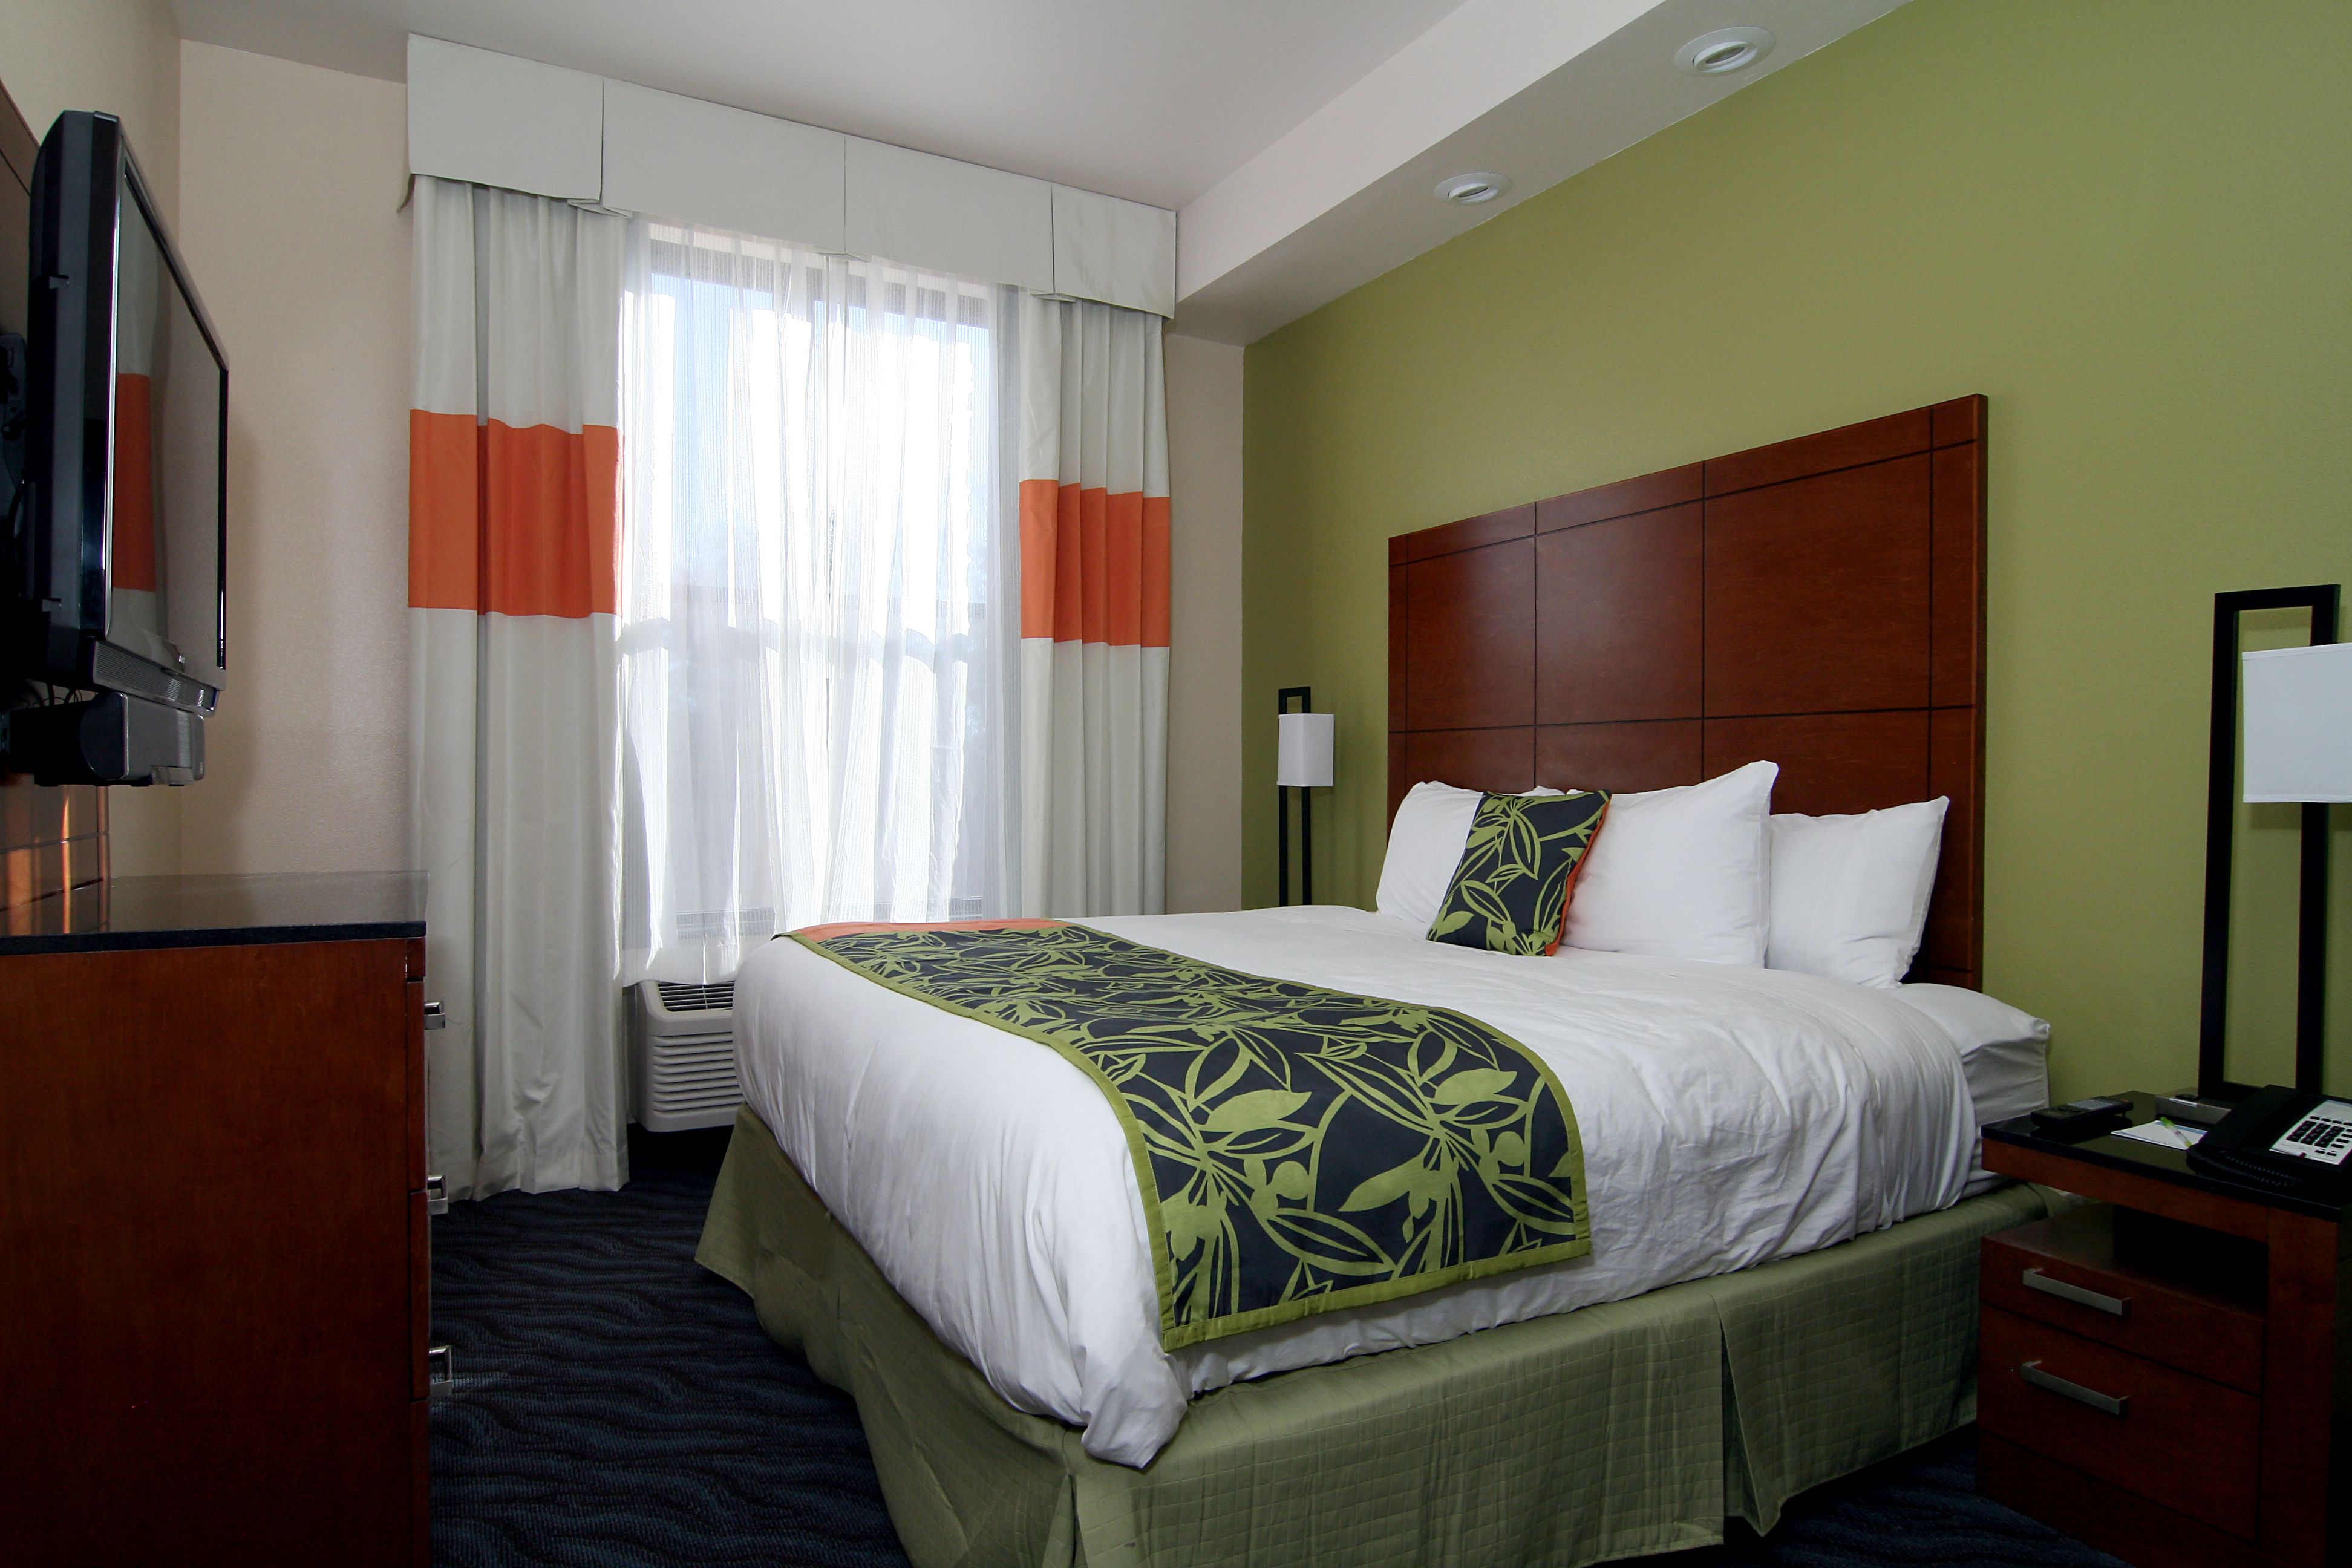 Hospitality Designs offers a full range of custom-made drapery options for your hotel guestroom and public area window treatments, including valance and cornice treatment, side panels, blackout liners, sheers, and timber blinds. #drapery #drapes #windowcoverings #windows #interiordesign